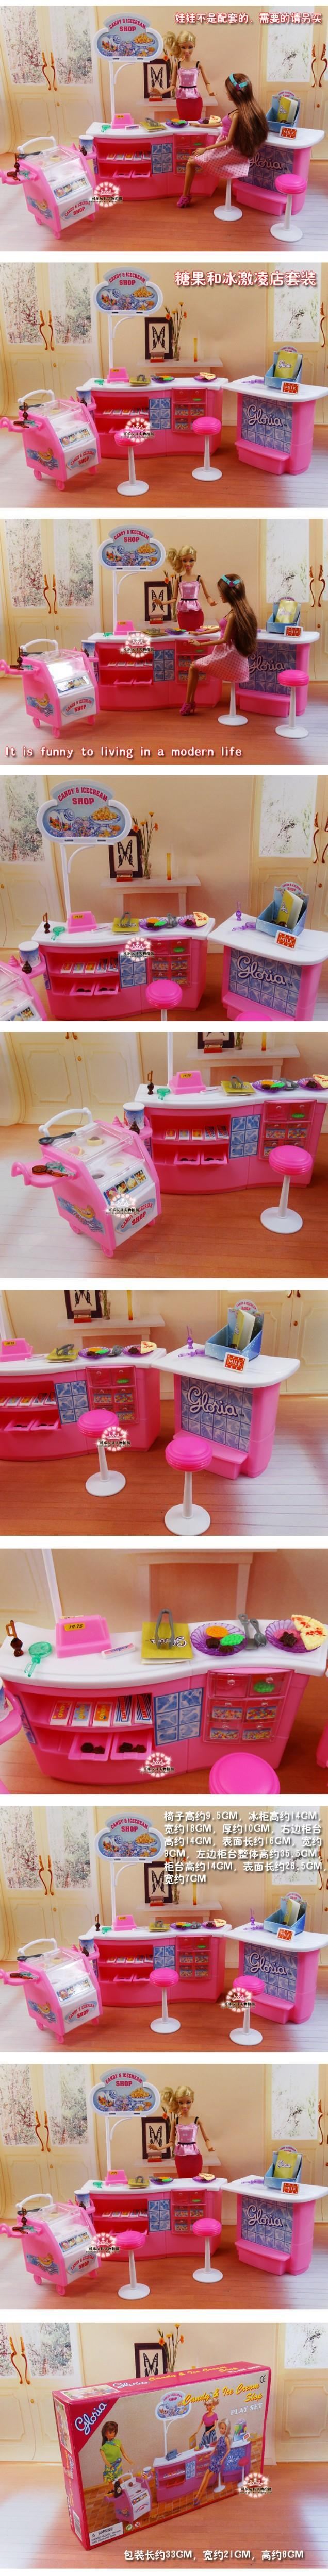 Free Delivery Woman reward plastic Play Set Sweet and ice cream store Present Set doll equipment doll furnishings for barbie doll